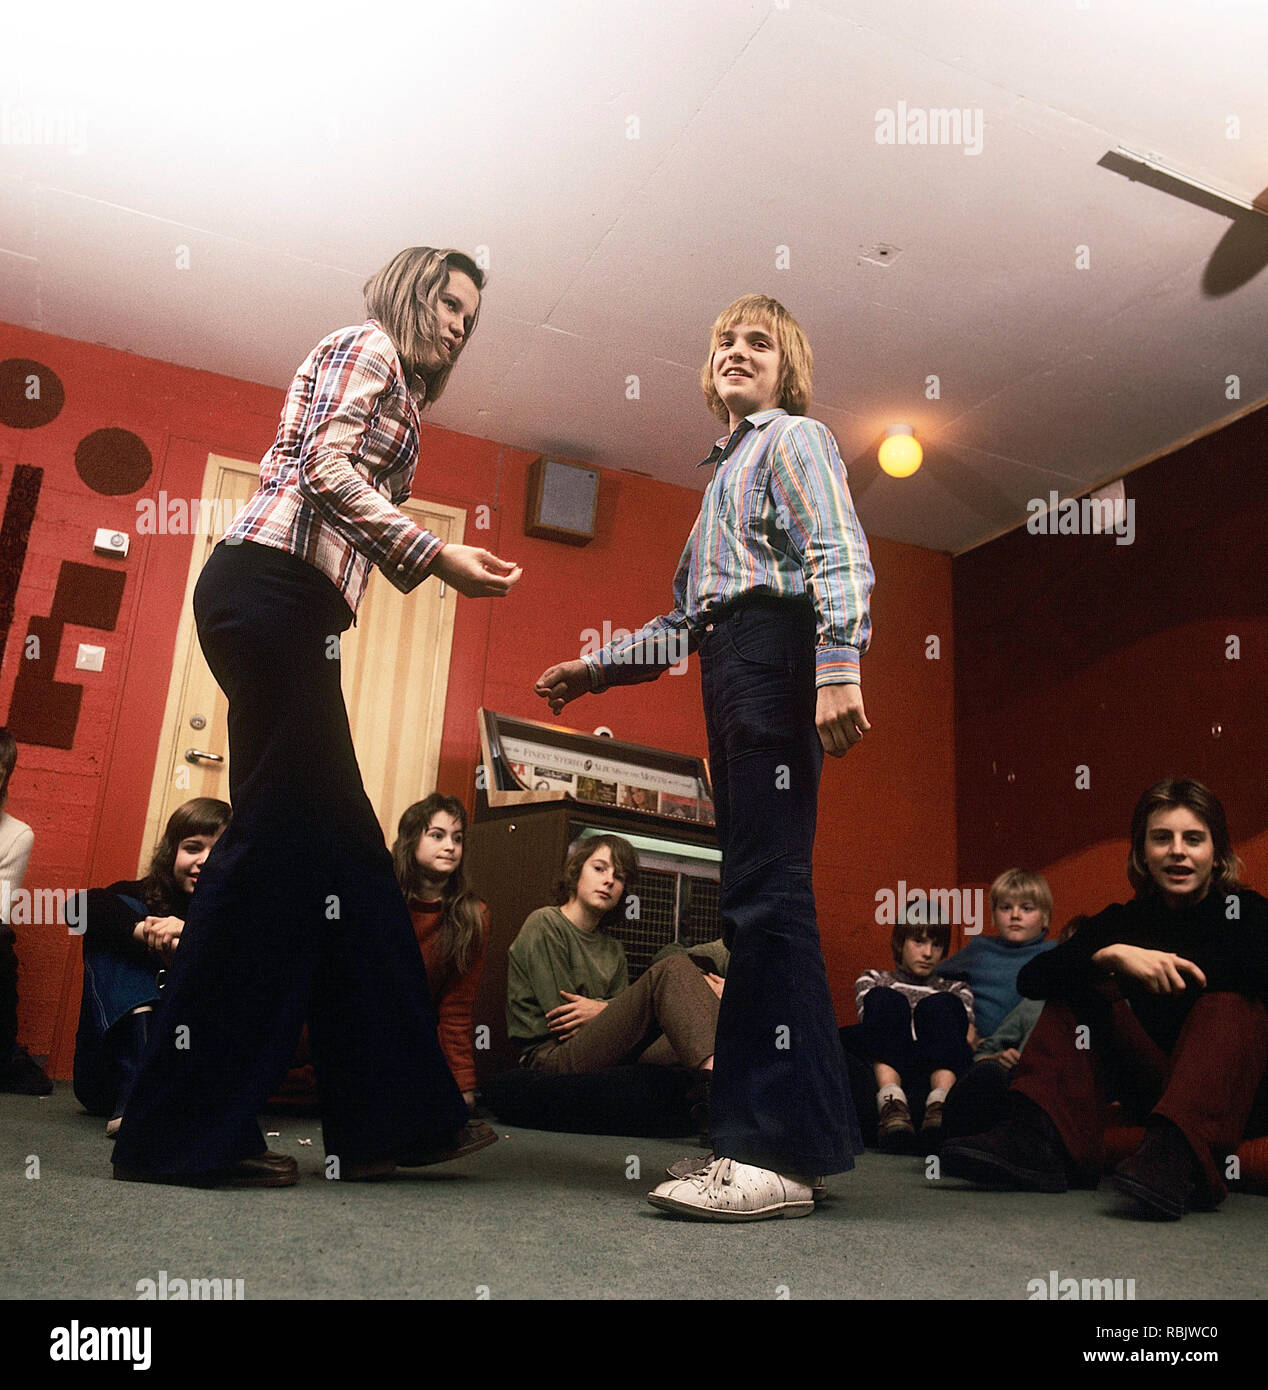 Teenage party in the 1970s. A group of teenagers have arranged a party and a boy and a girl is dancing to the music from the jukebox. Notice the wide legged jeans type that was typical of the decade. Sweden 1970s. Photo Kristoffersson Stock Photo